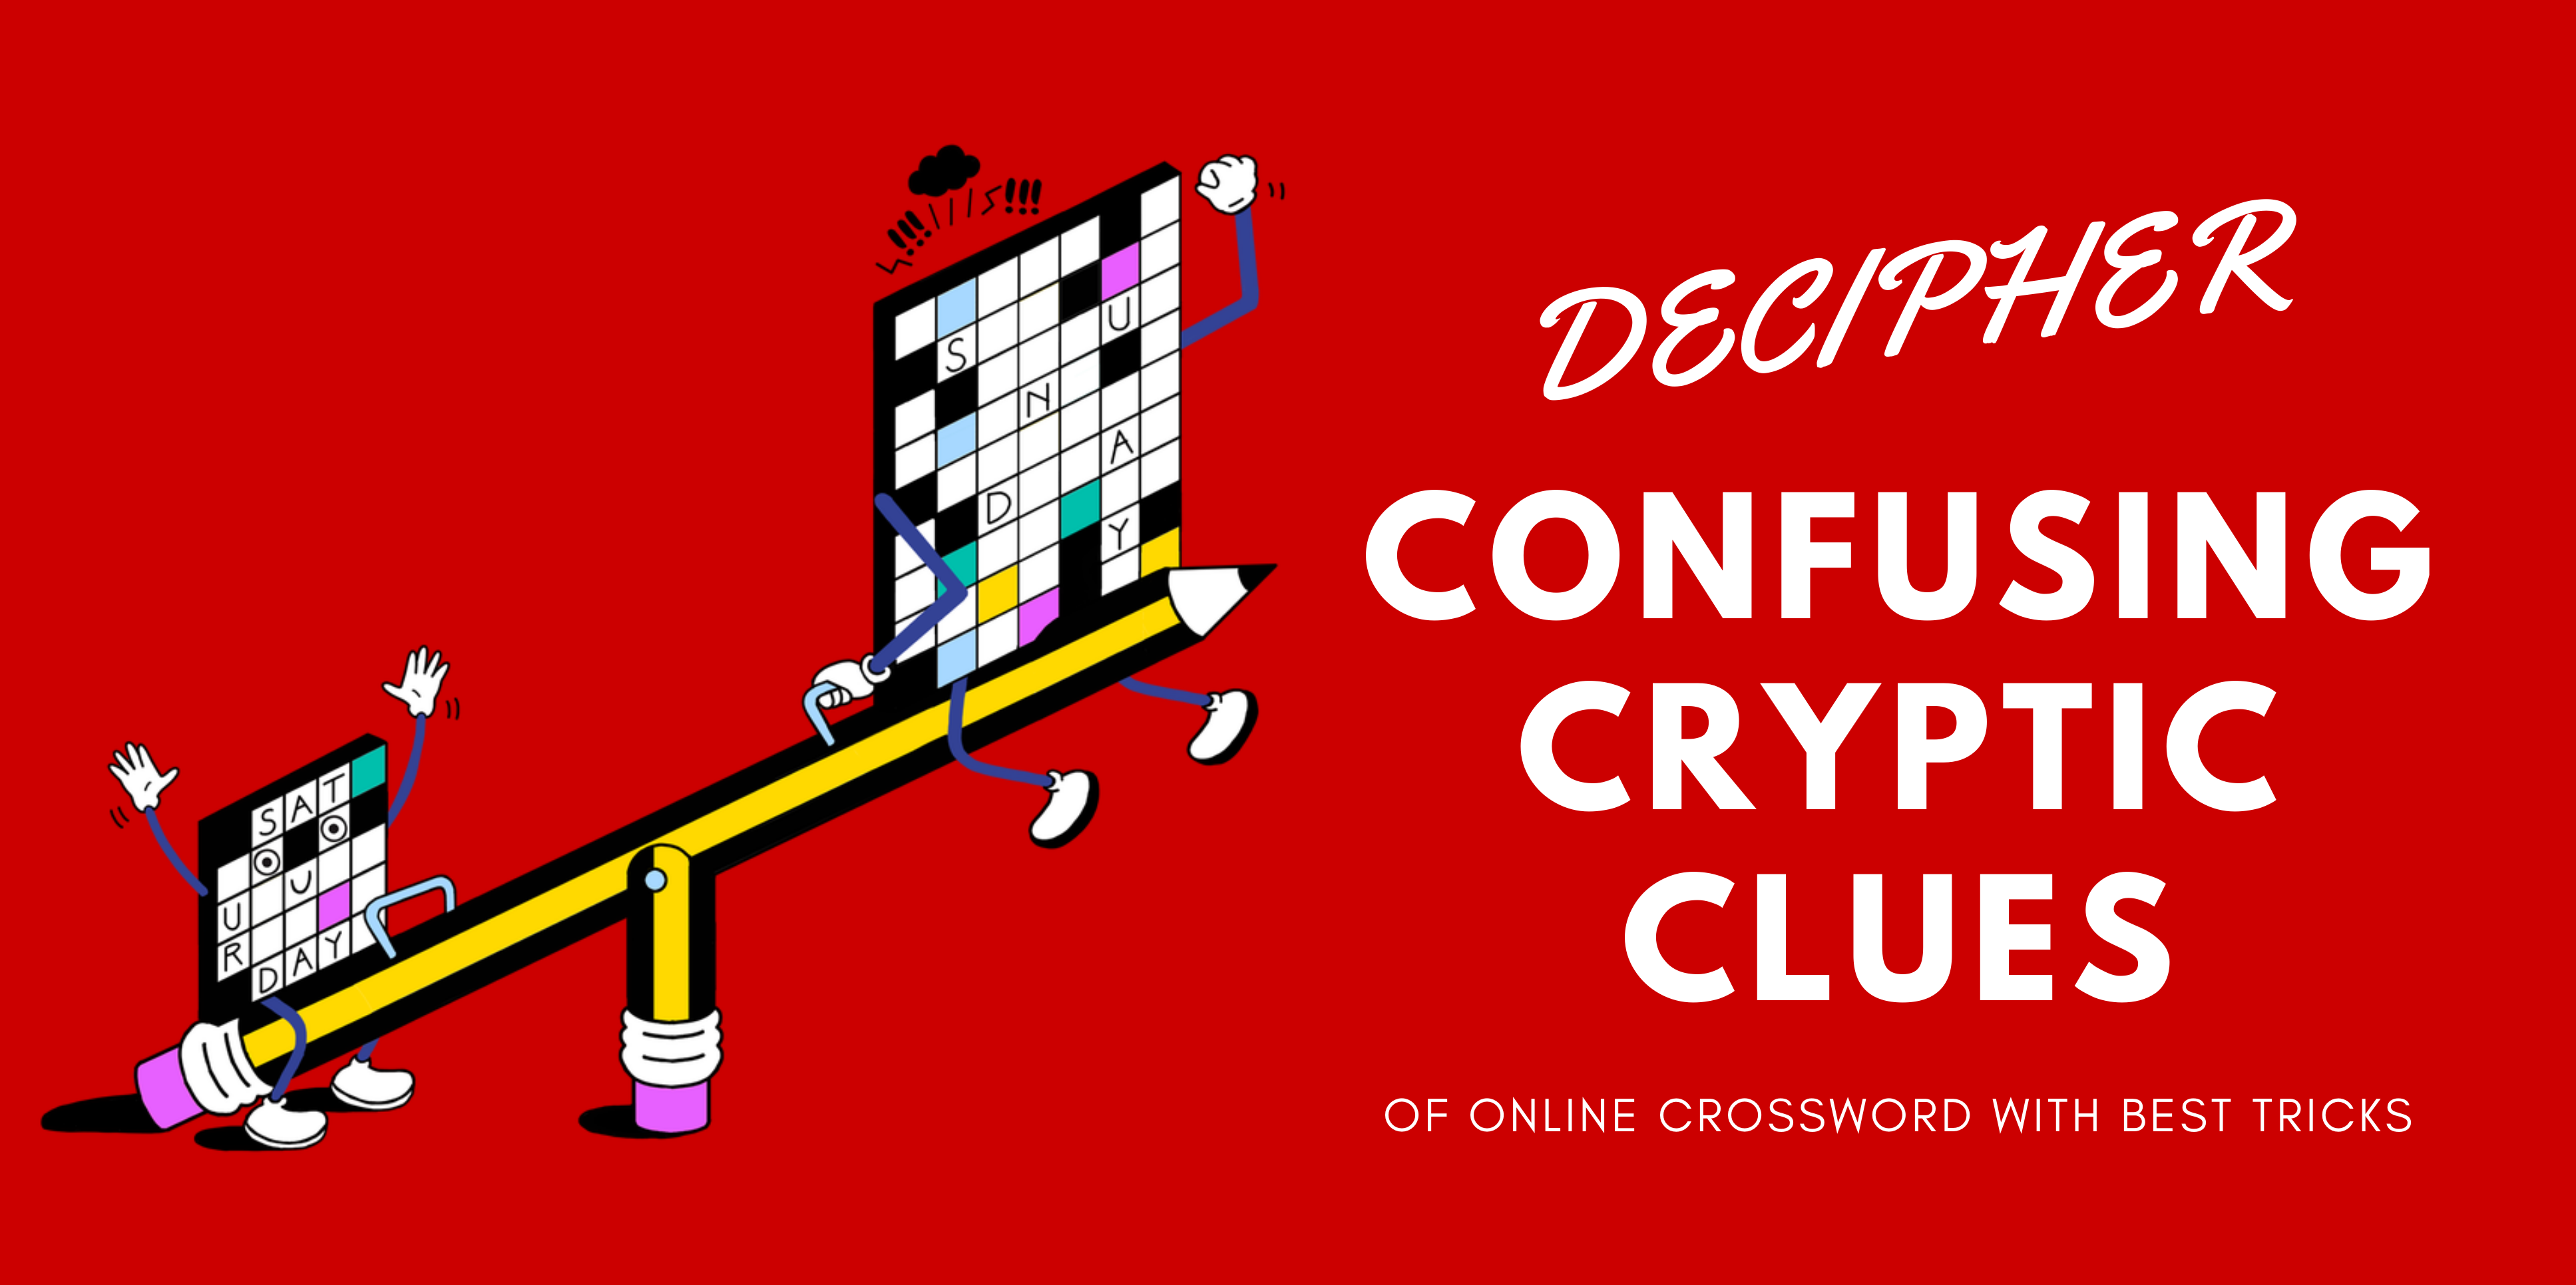 cryptic clues examples,  cryptic clues quiz,  best cryptic crossword clues answers,  cryptic clue,  cryptic clues,  english cryptic crossword solver,